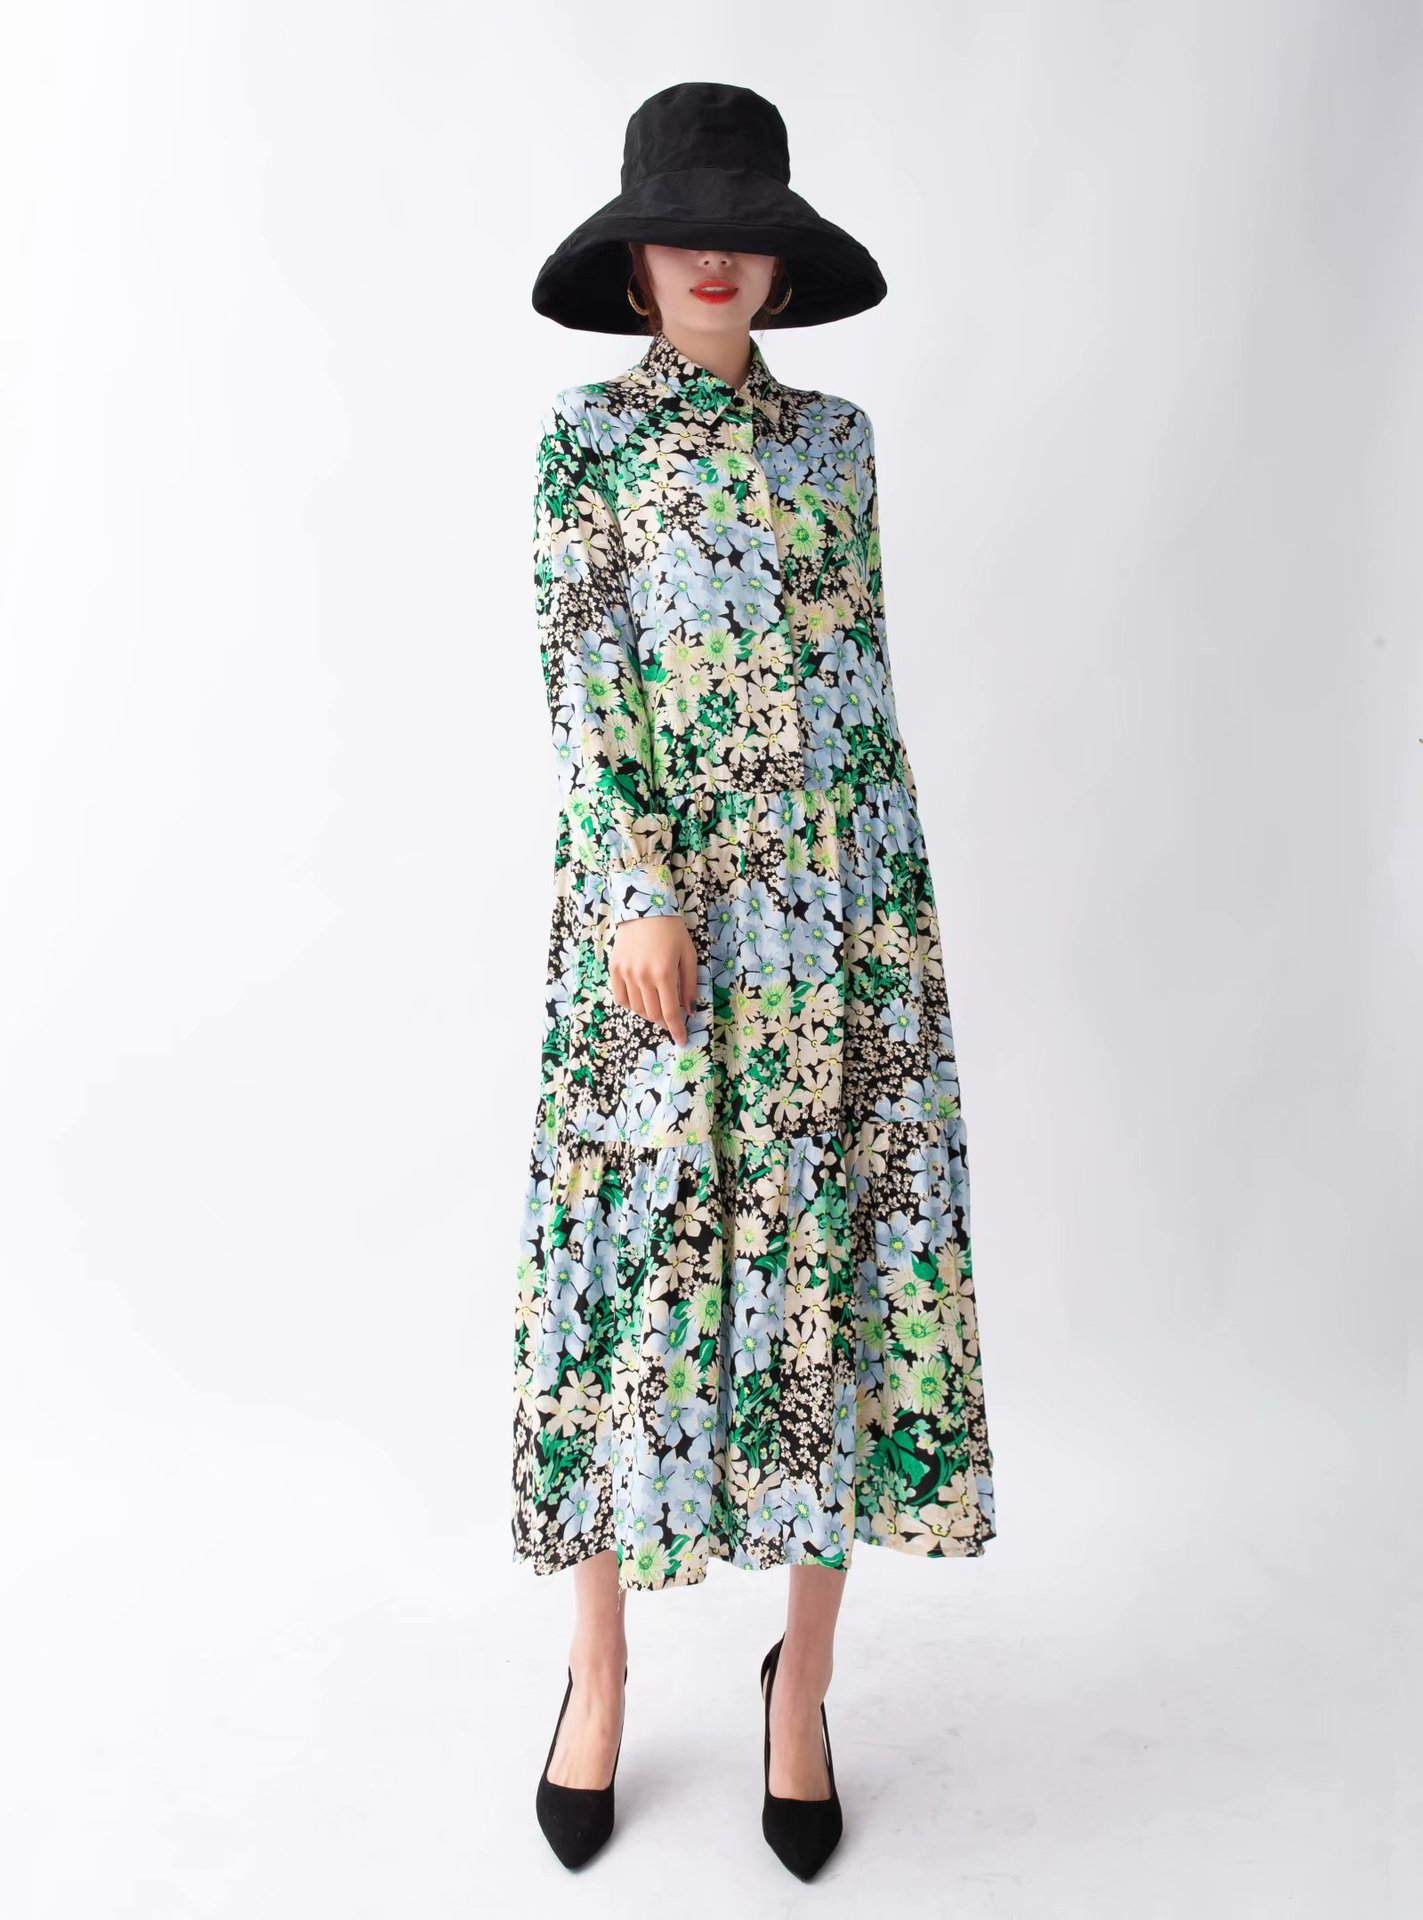 2020 New Spring Summer New Style European Collared Floral Printed Dress Zaraing Vadiming Sheining Women Female Dress